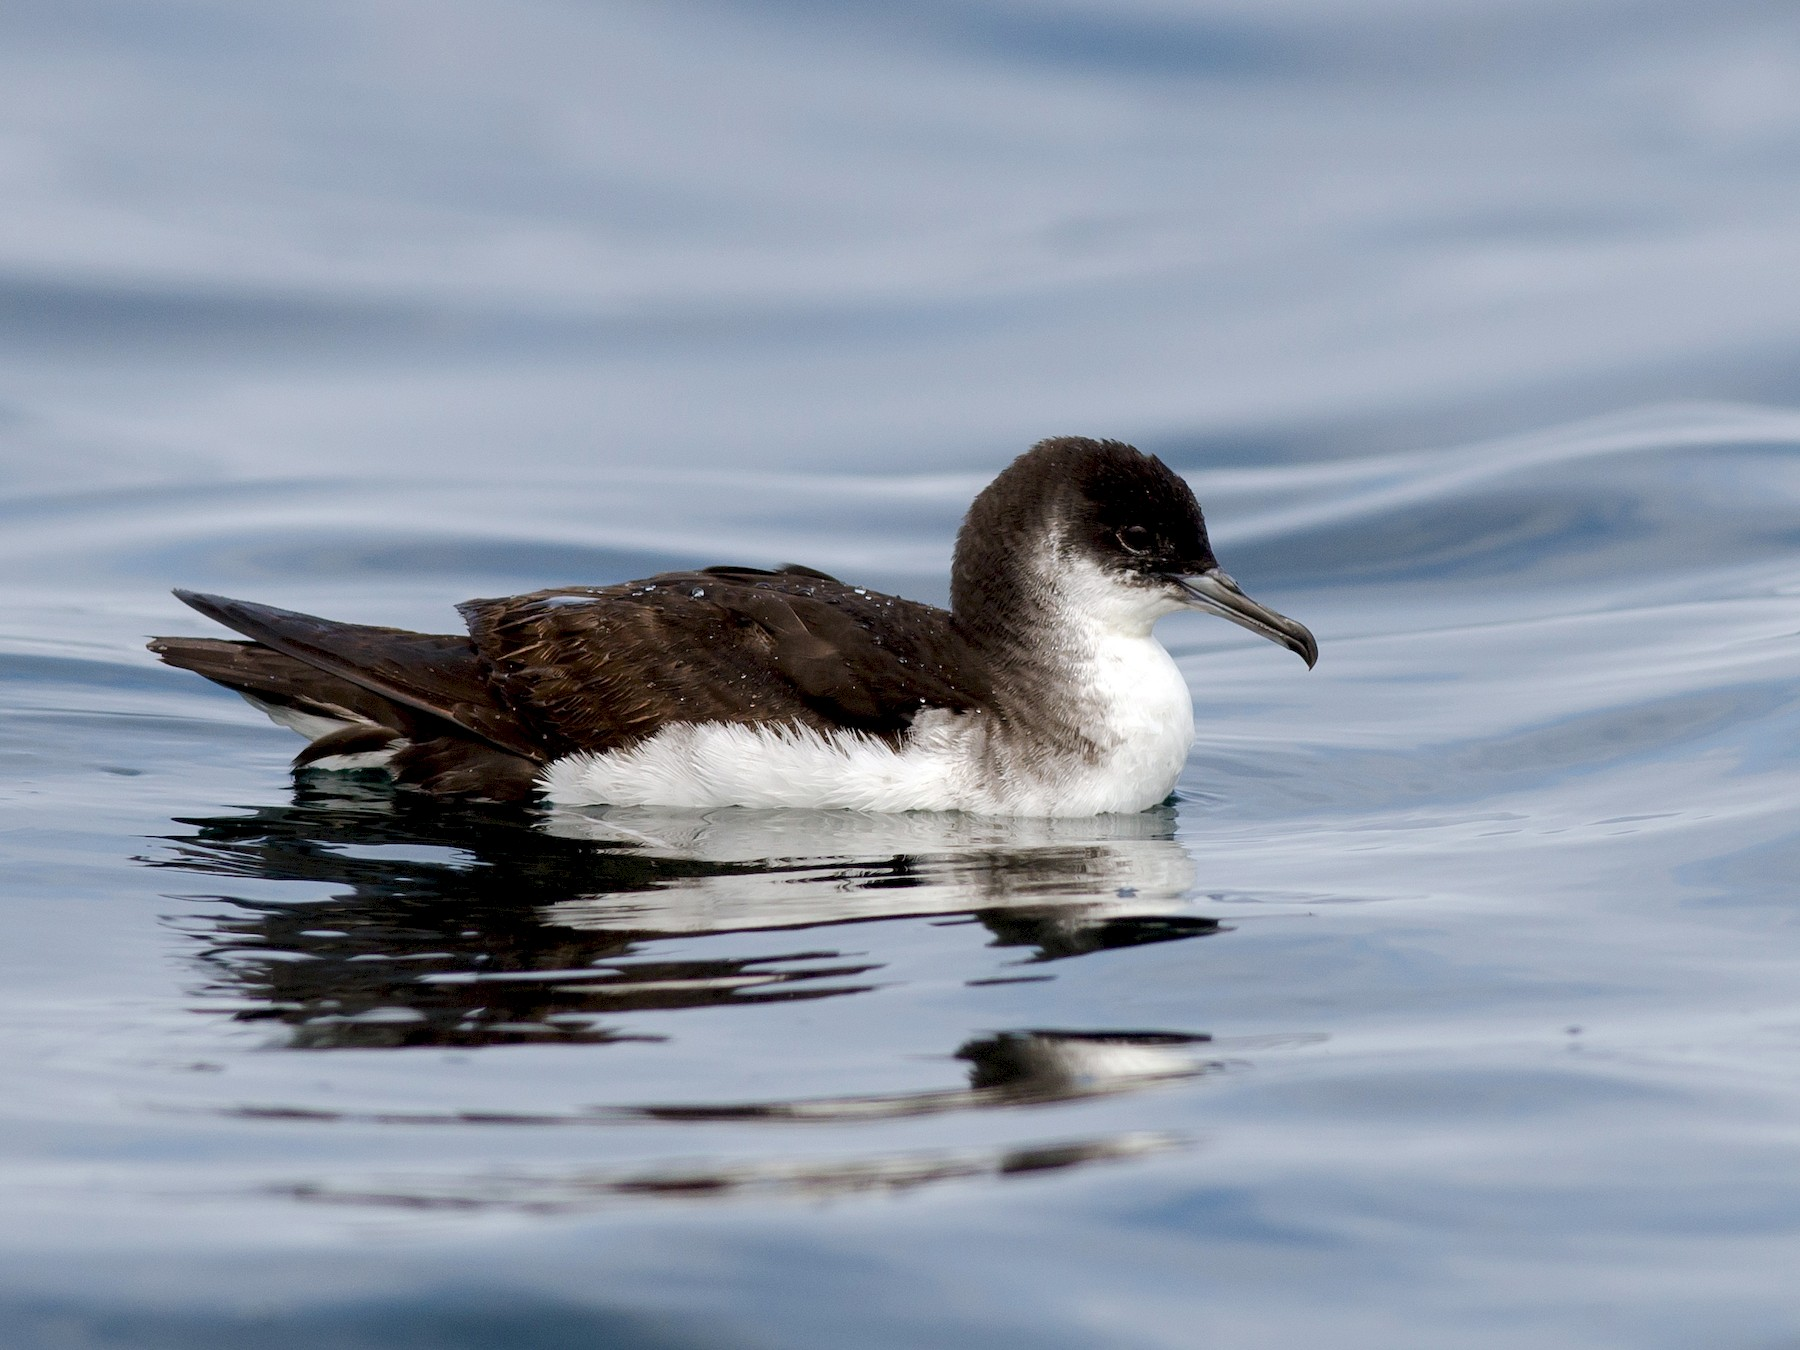 Manx Shearwater - Alix d'Entremont